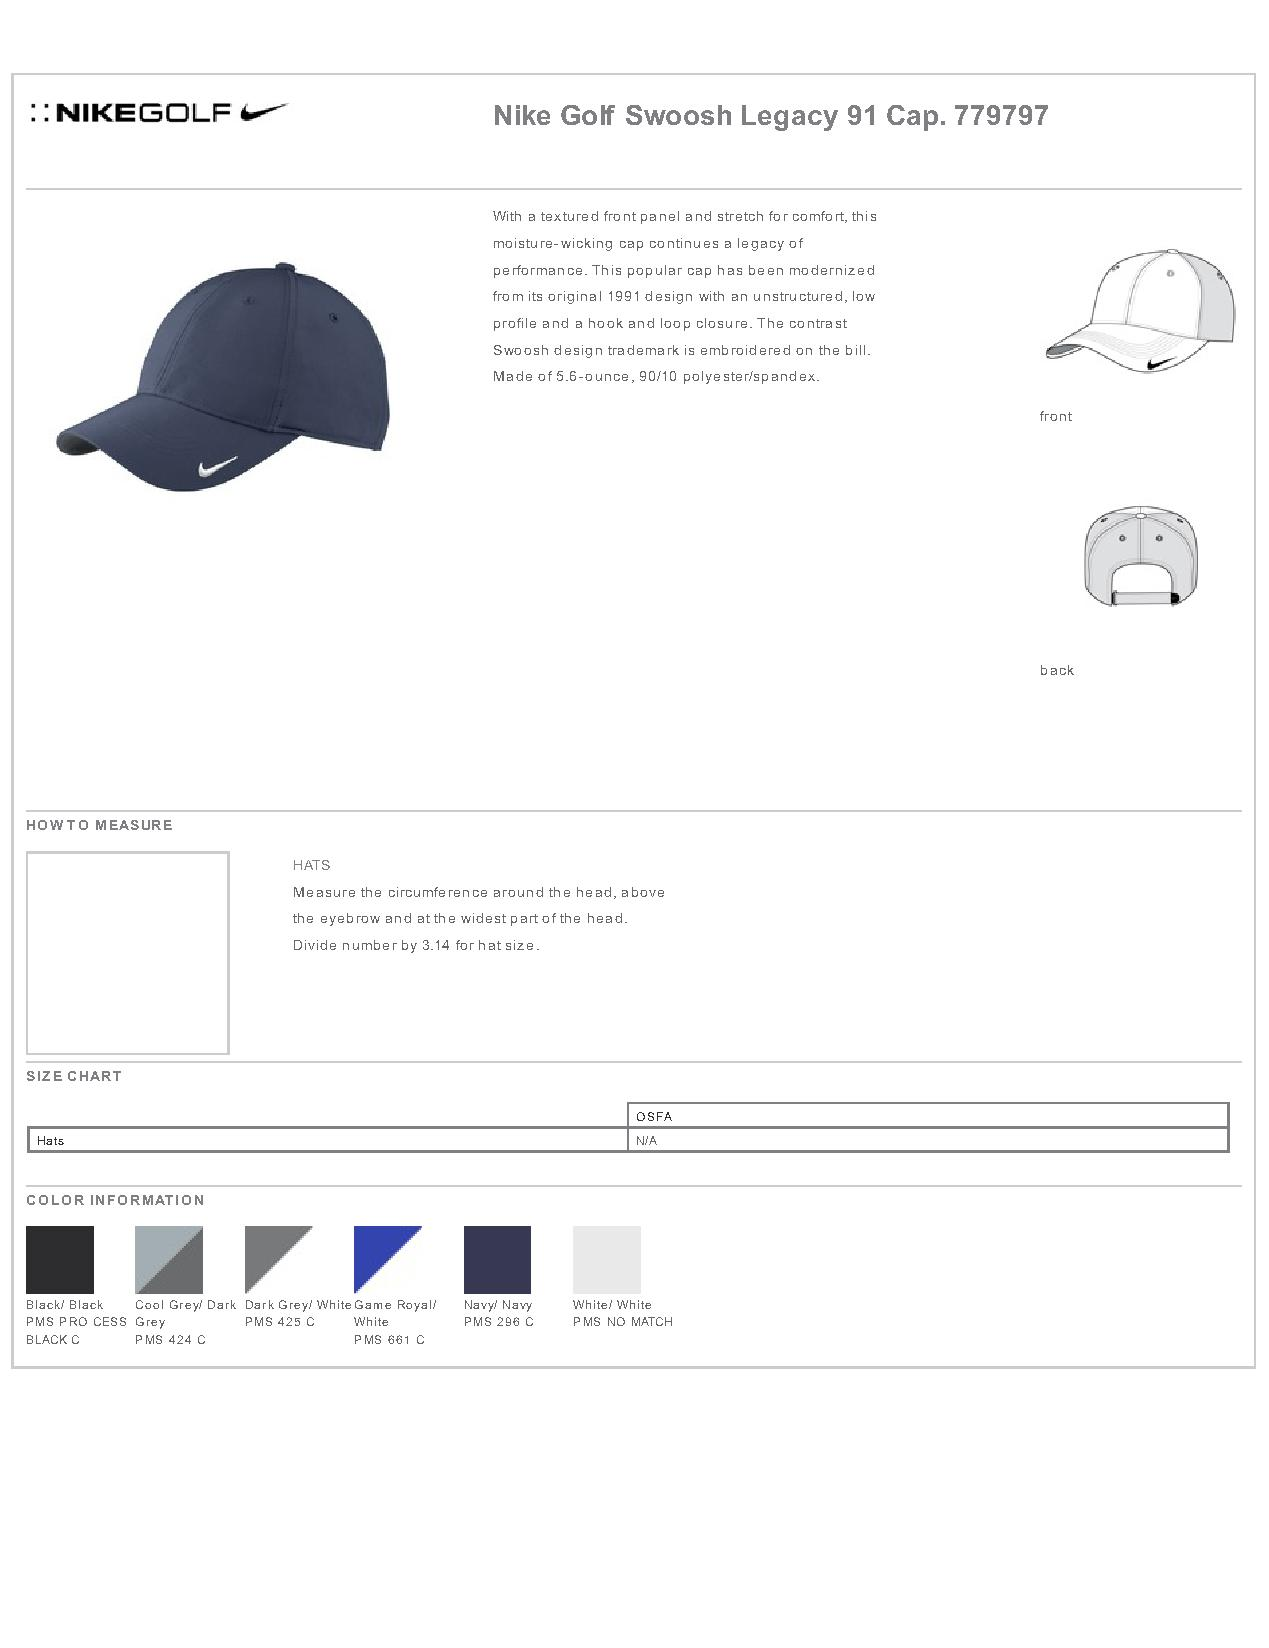 0911afebab2d8 Popular Designs. custom design of Nike Golf 779797 - Swoosh Legacy 91 Cap